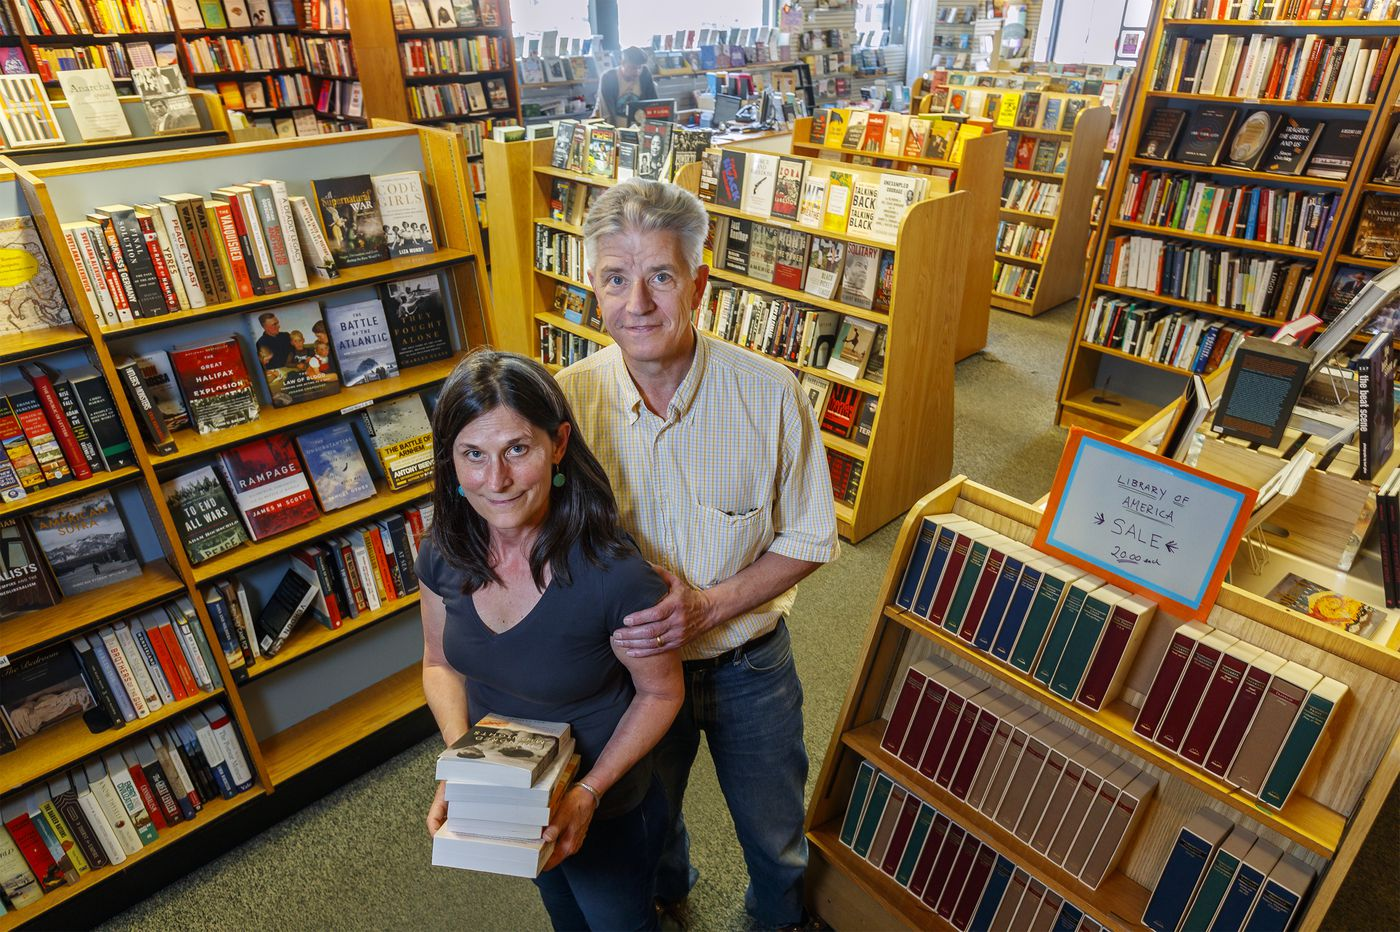 Penn campus' last independent bookstore is fighting a losing battle against Amazon, but there's hope